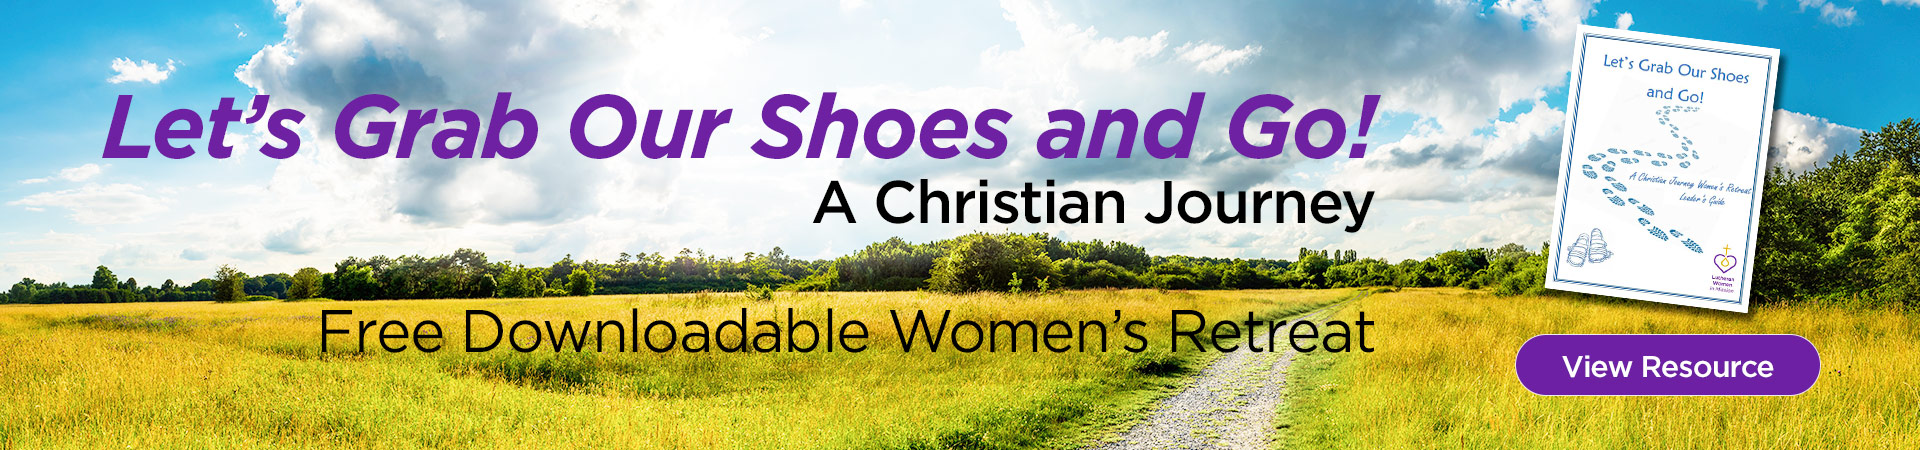 New Women's Retreat: Let's Grab Our Shoes and Go! A Christian Journey